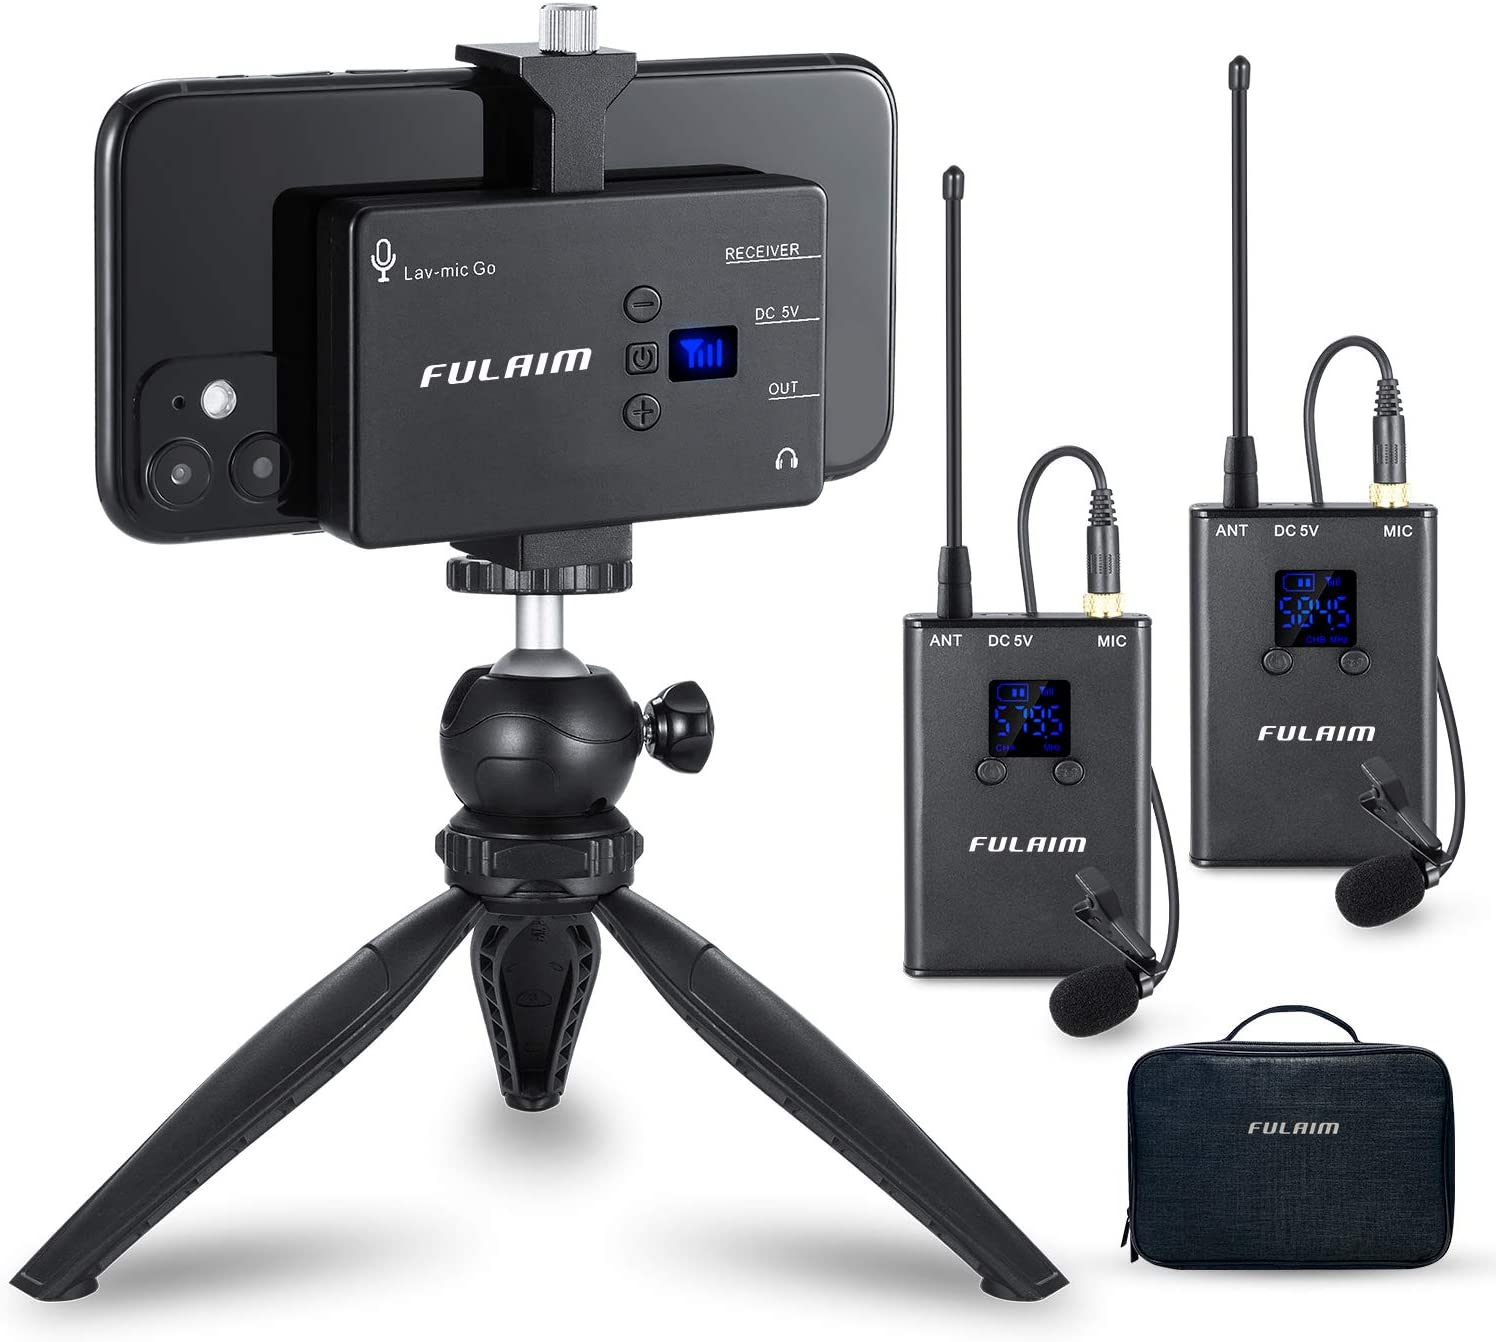 Mini Wireless Lavalier Microphone System LENSGO LWM-318C 20-Channel UHF Professional Omnidirectional Wireless Lapel Mic with 1 Transmitter /& 1 Receiver for Canon Nikon DSLR Camera Smartphone and More